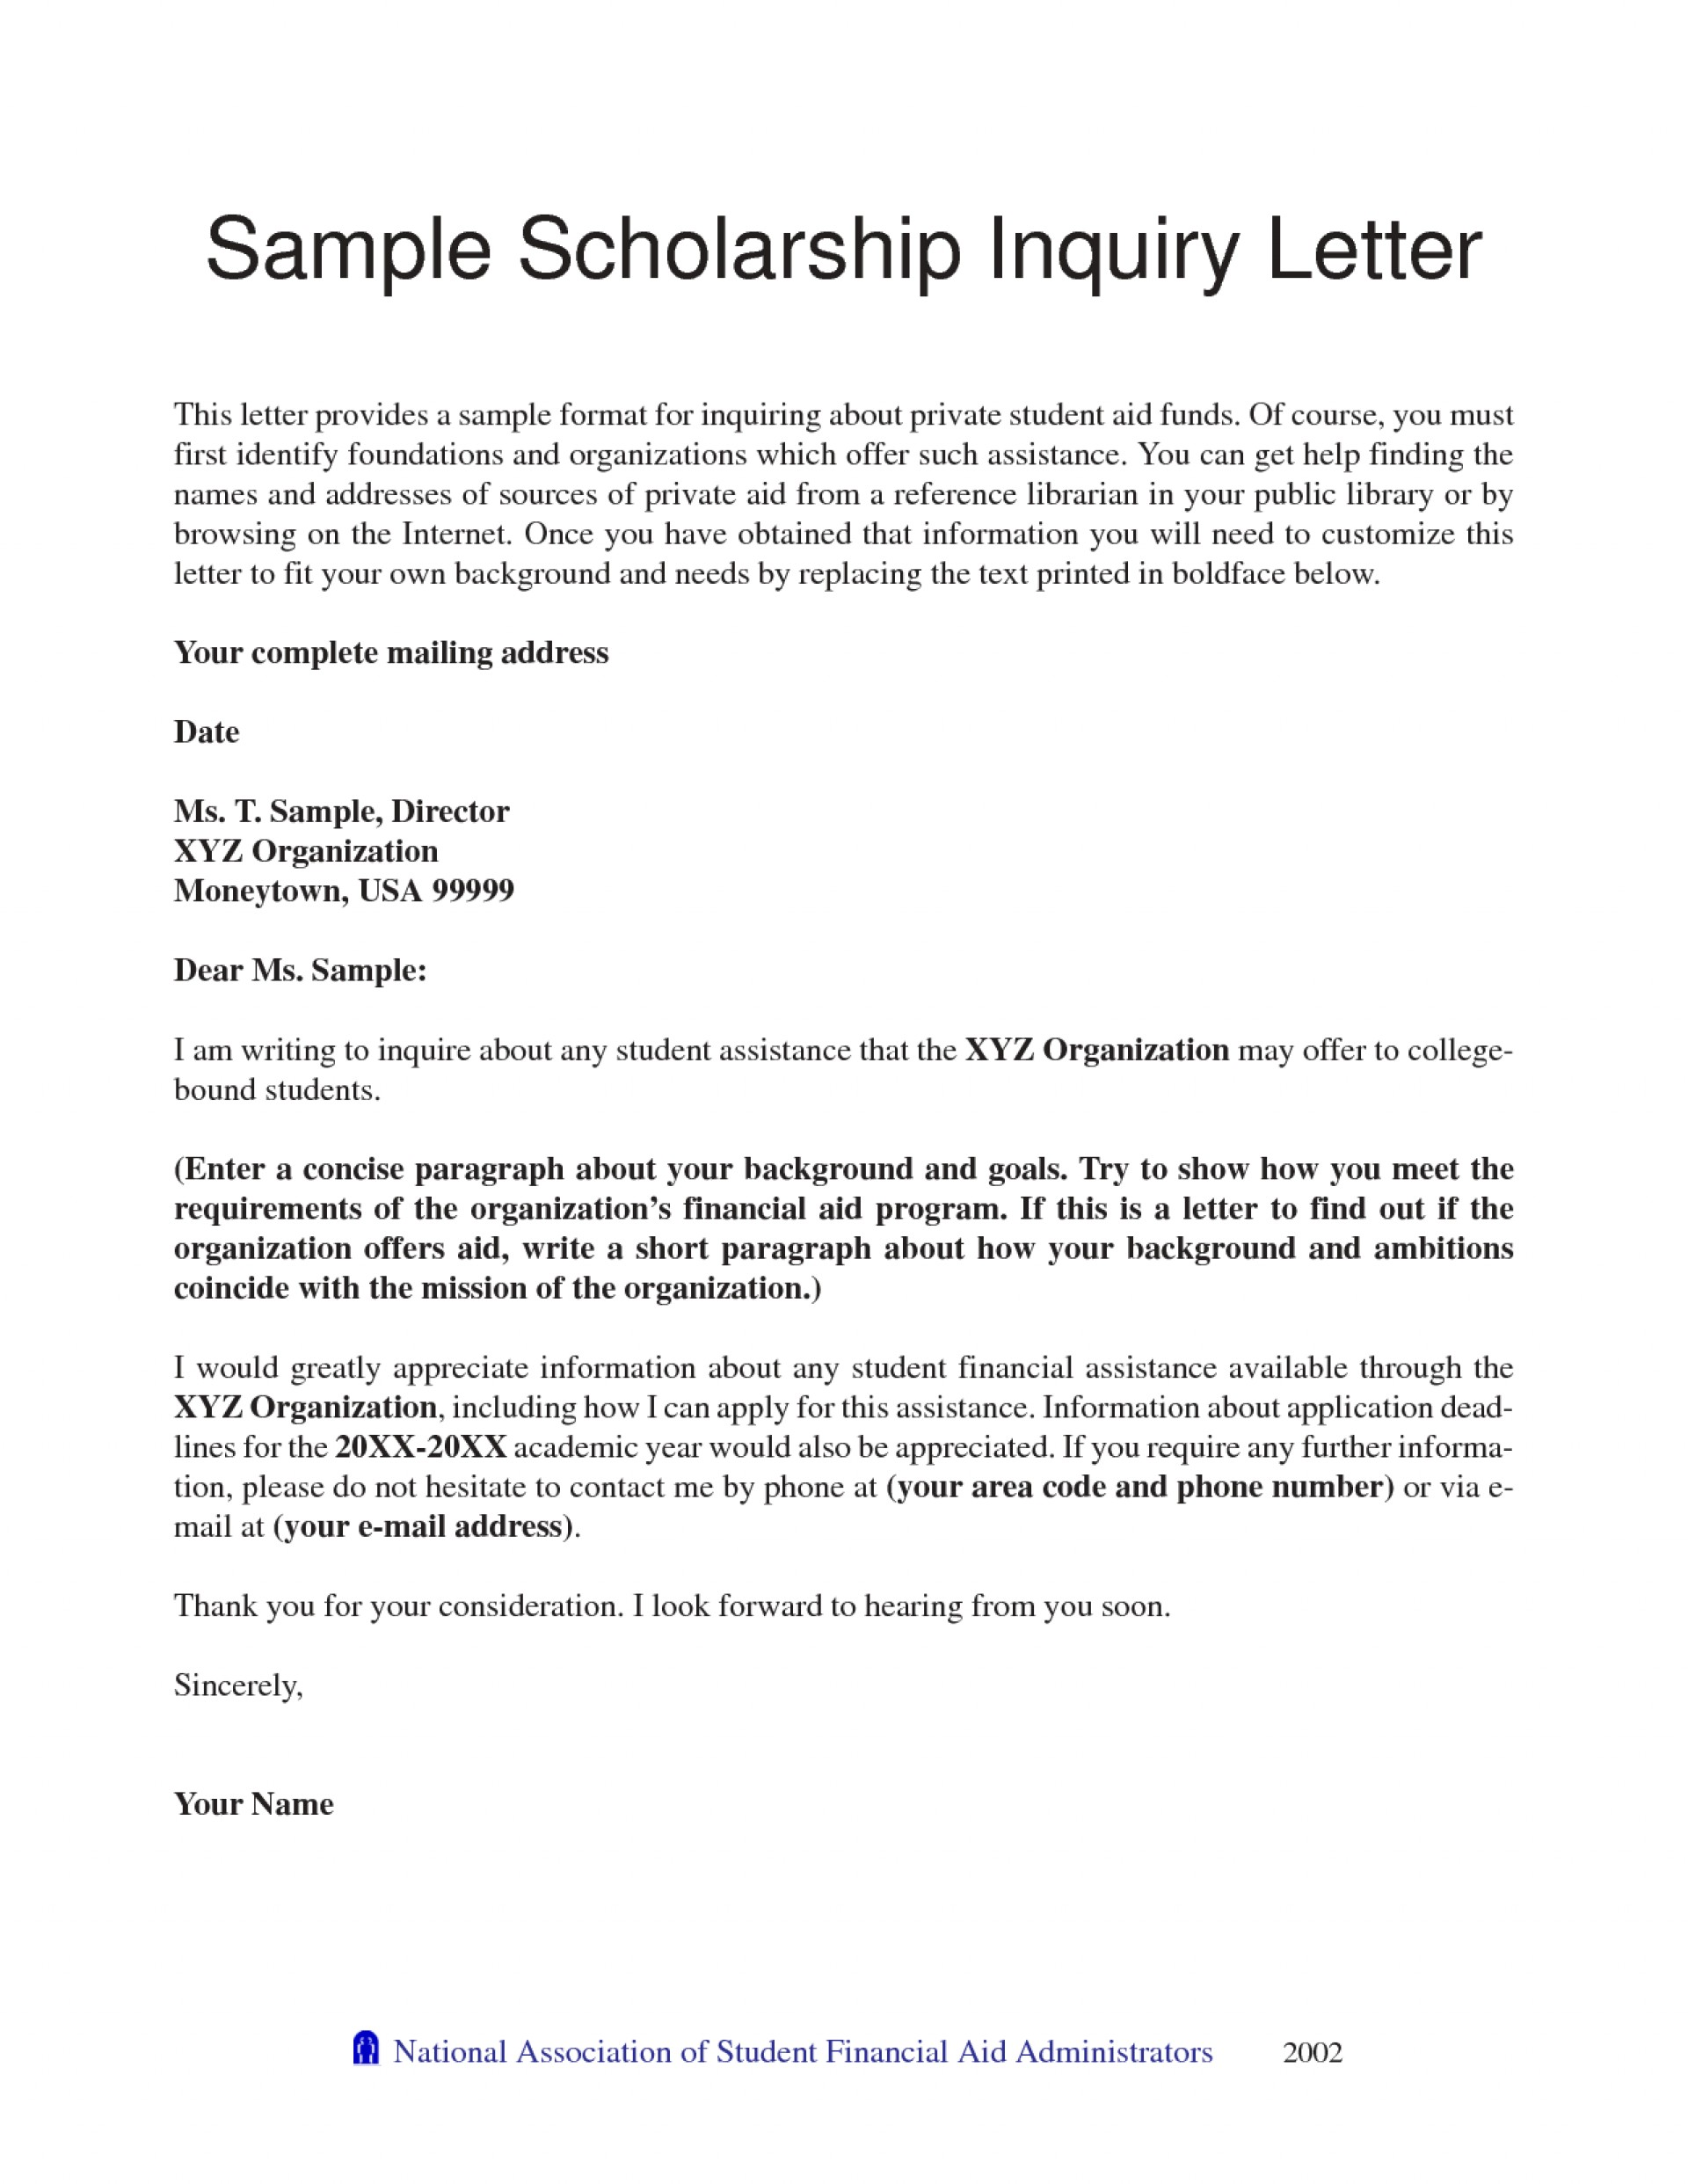 019 Collection Of Solutions College Scholarship Recommendation Letter Sample For Format Layout Scholarships Without Essays Essay Stunning In Texas With No Required Students Examples 1920